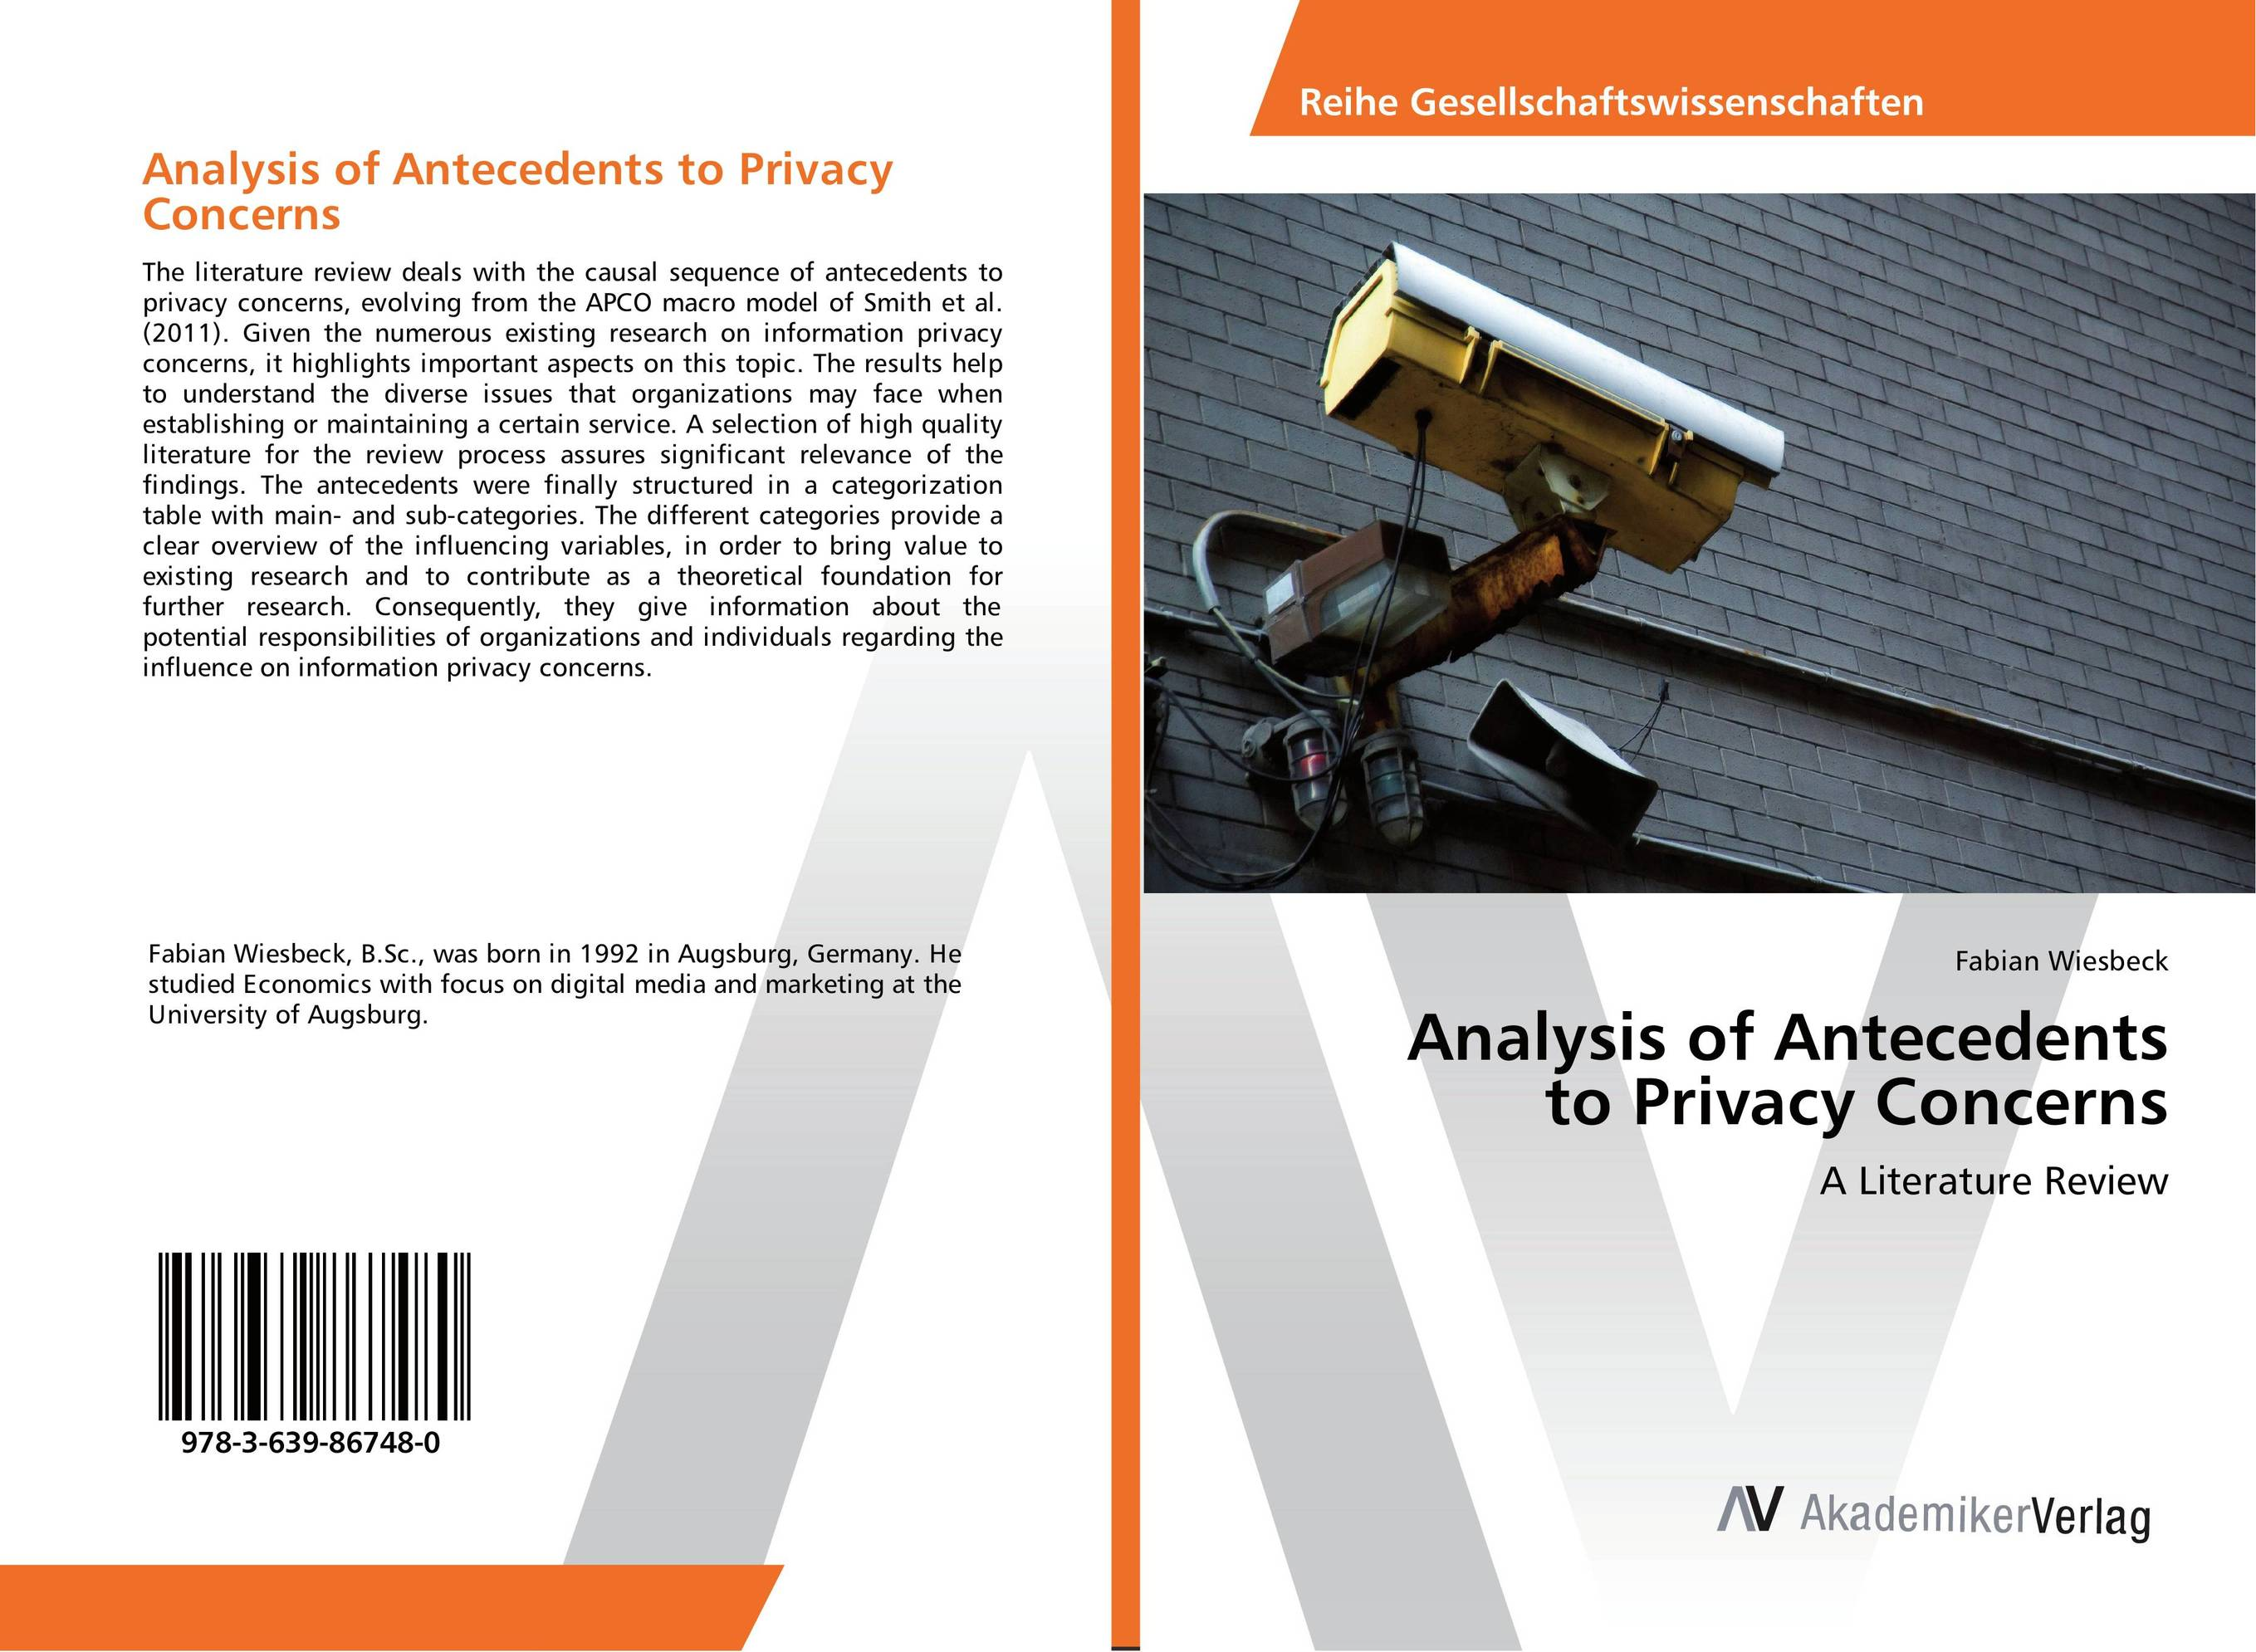 Analysis of Antecedents to Privacy Concerns a research literature review of topology optimization